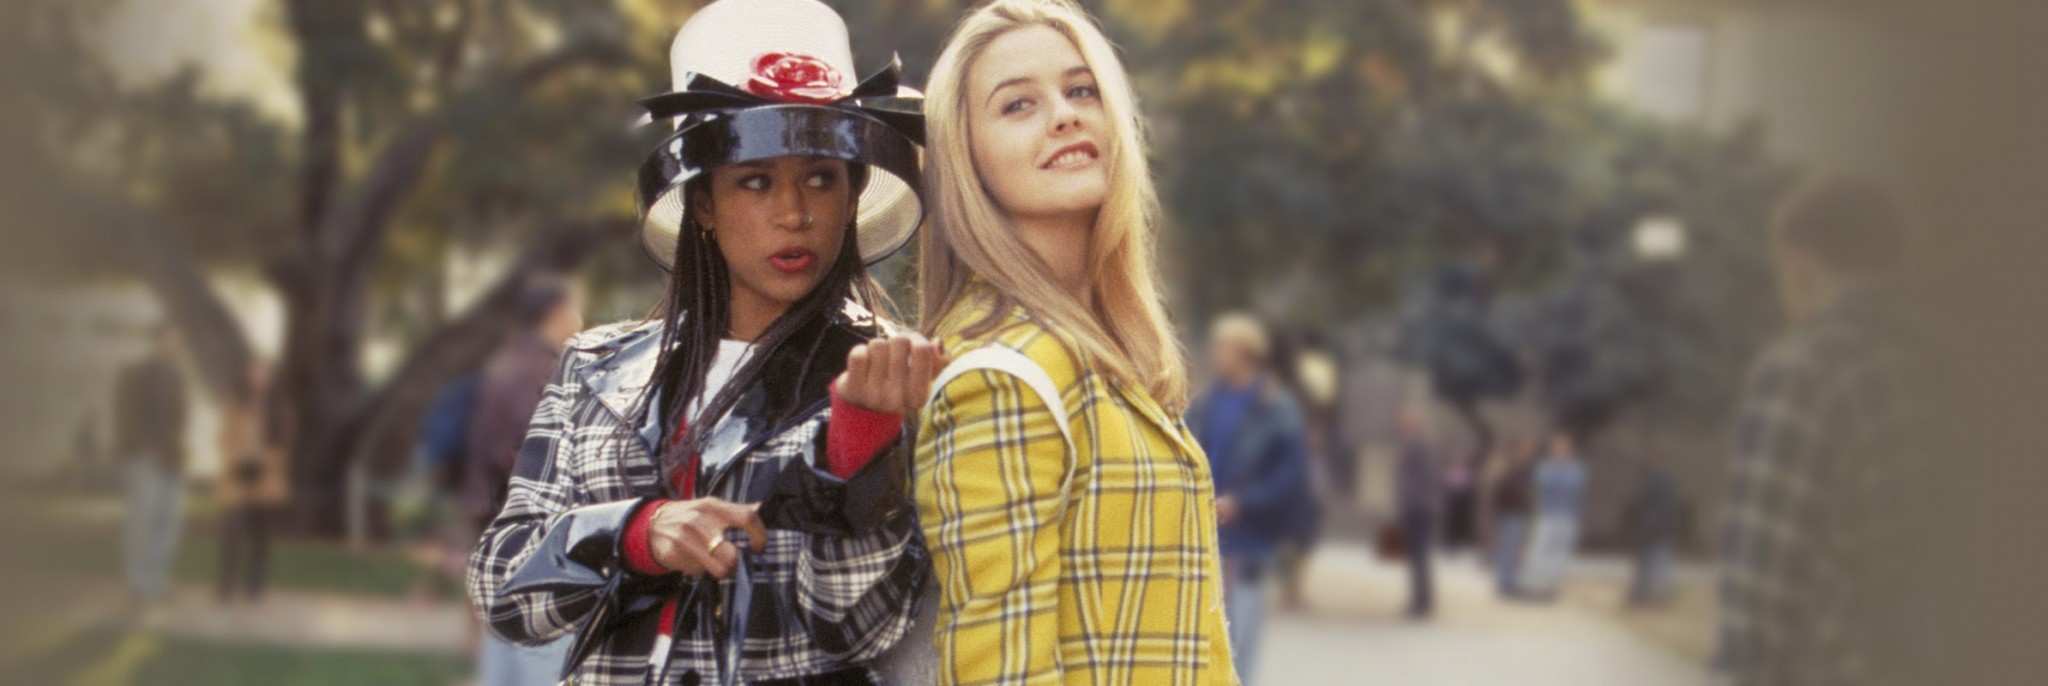 We Love the 90s: A Playlist Dedicated to Fall/Winter 2016's Biggest Trend